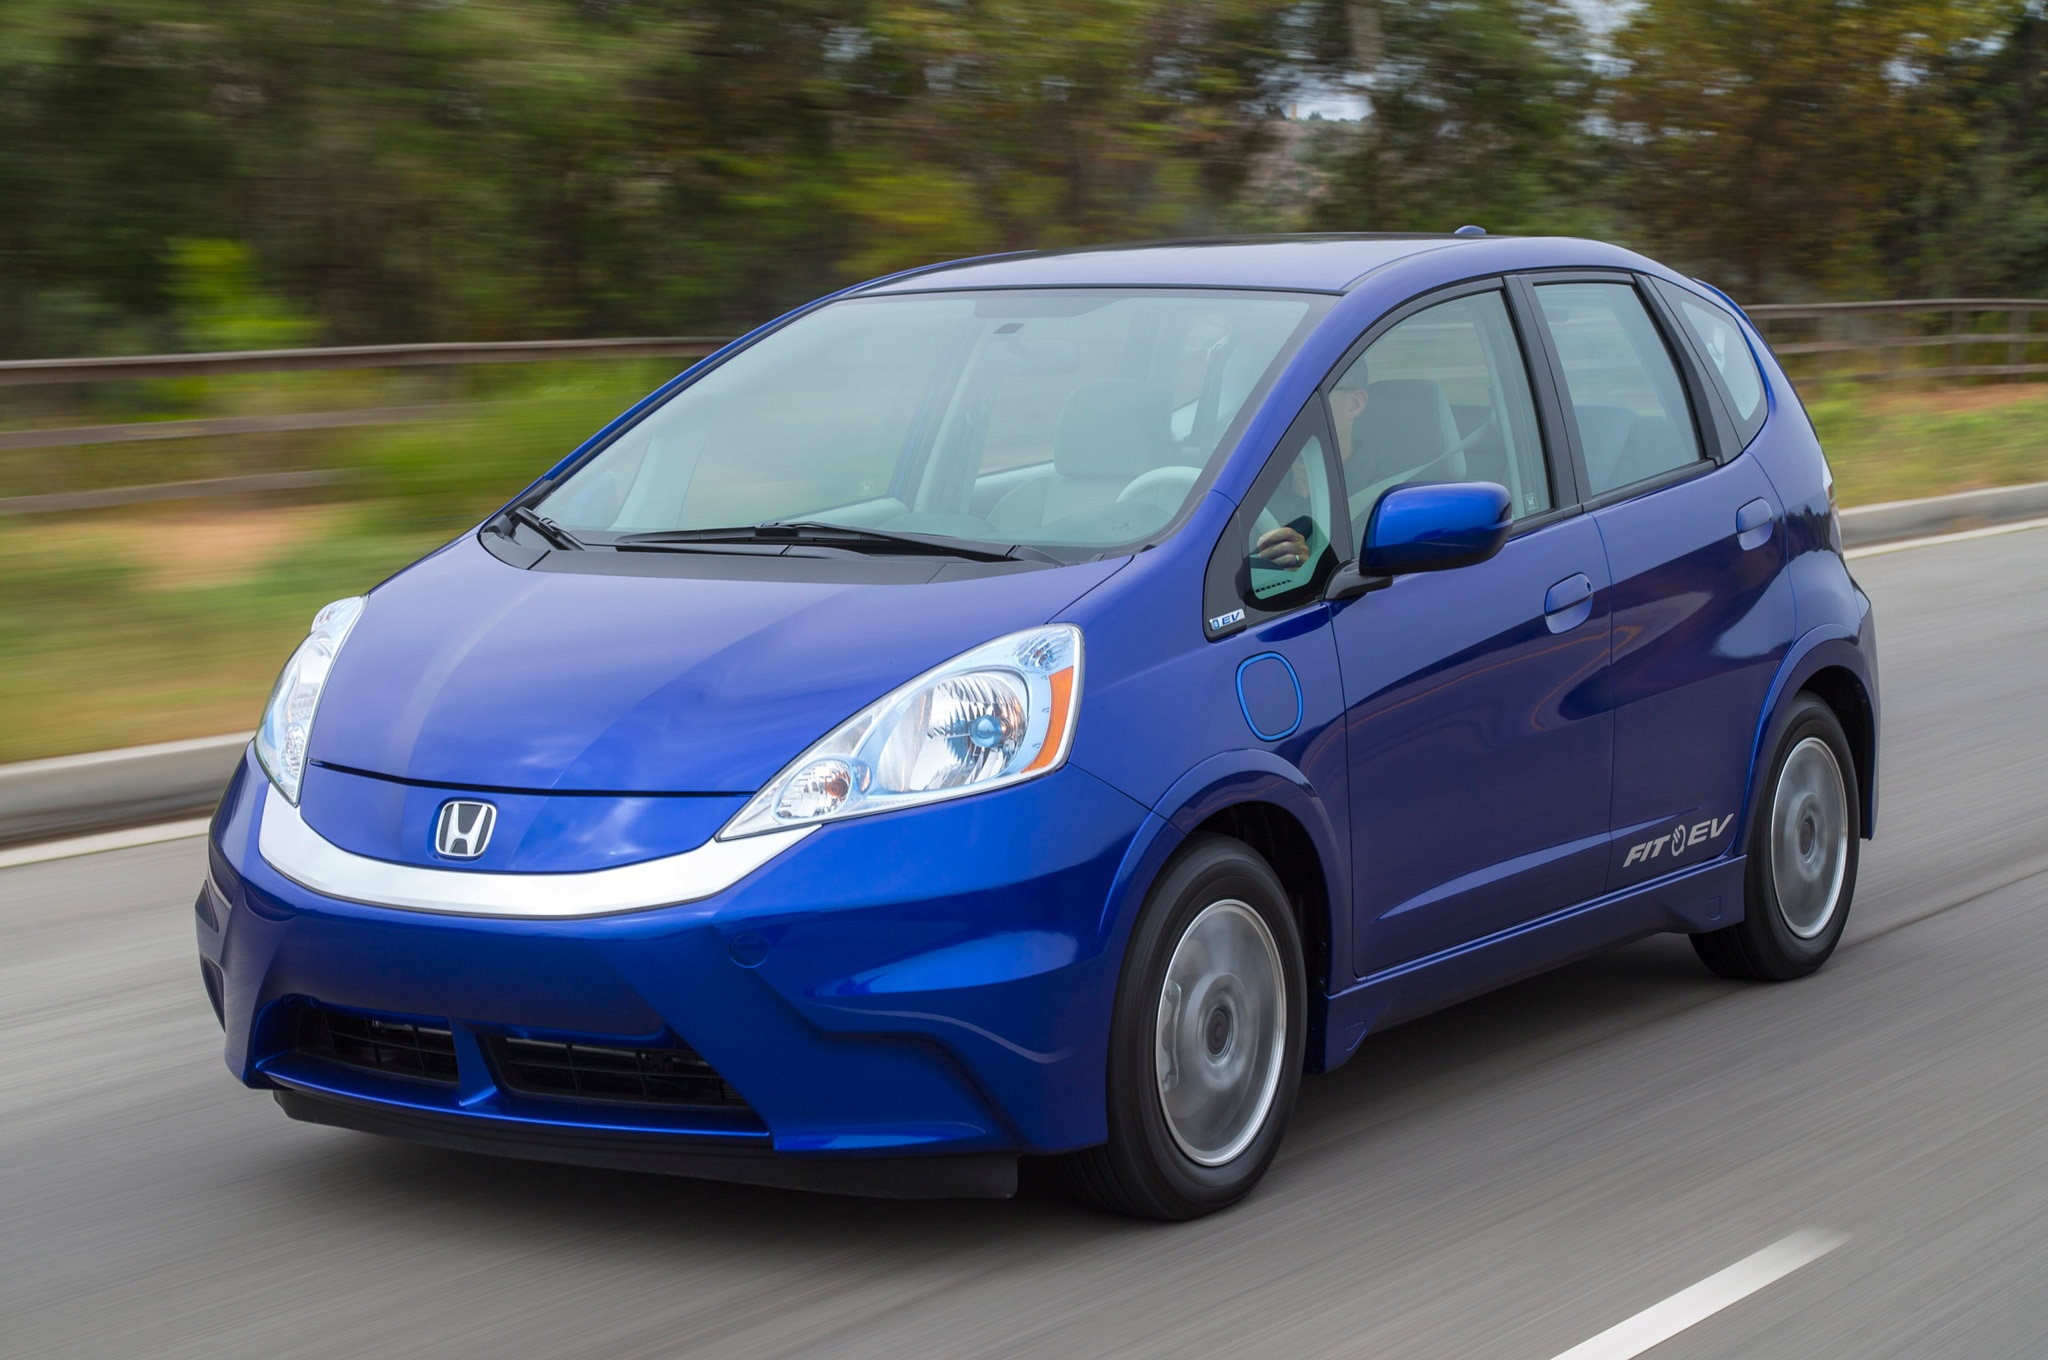 2013 Honda Fit EV Front Three Quarter Motion1